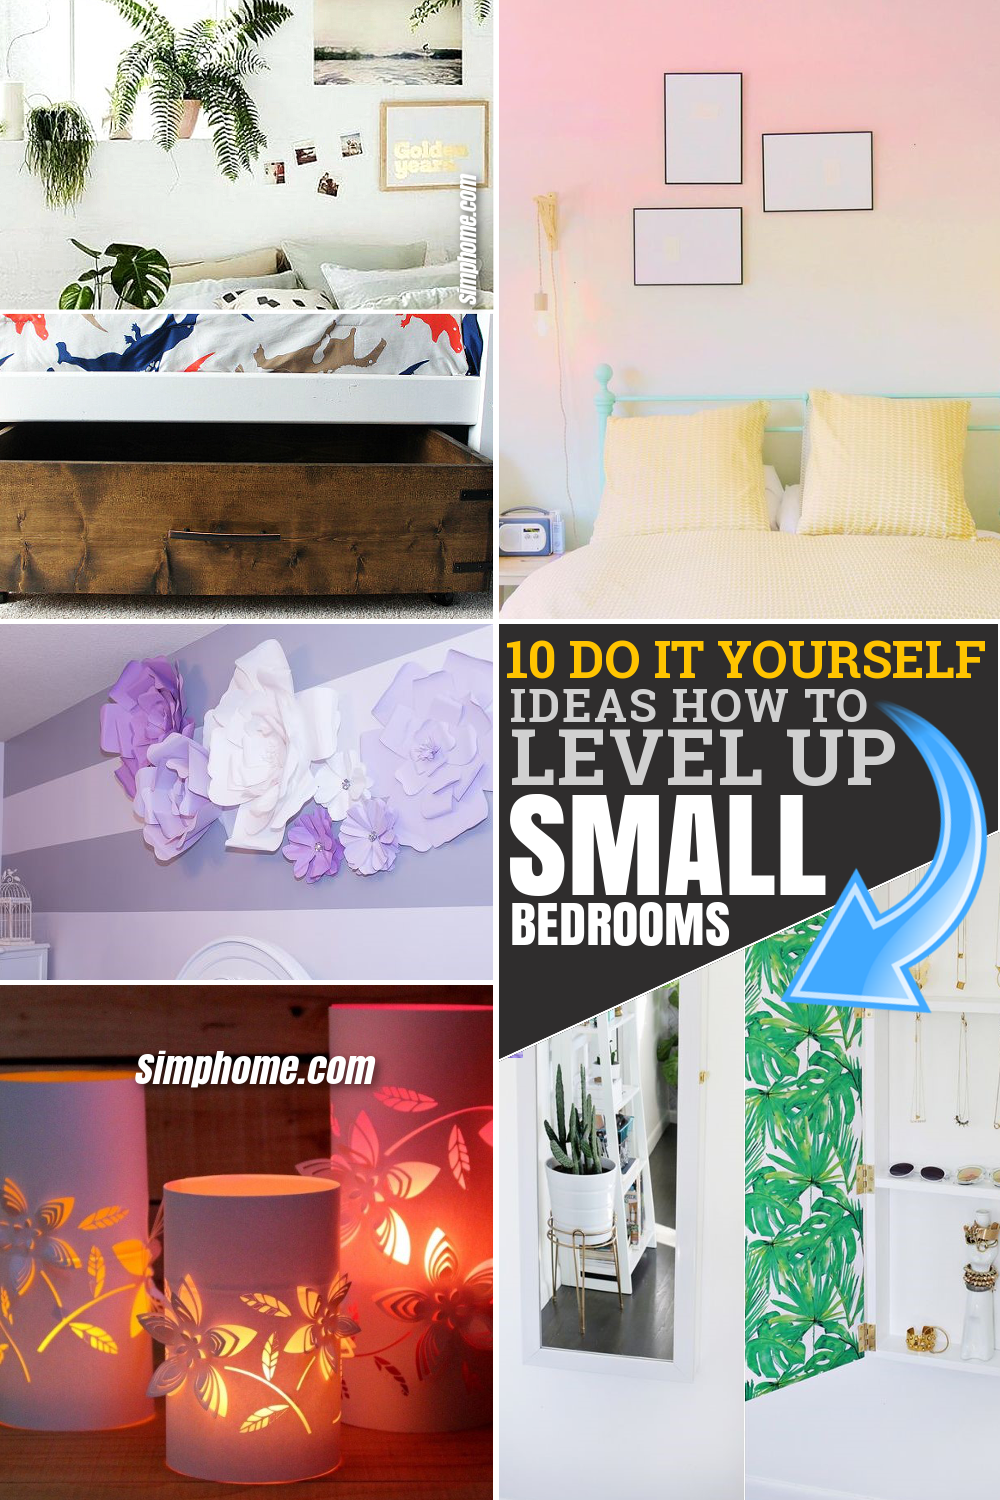 10 ideas how to level up small bedrooms via SIMPHOME.COM Featured Pinterest Image